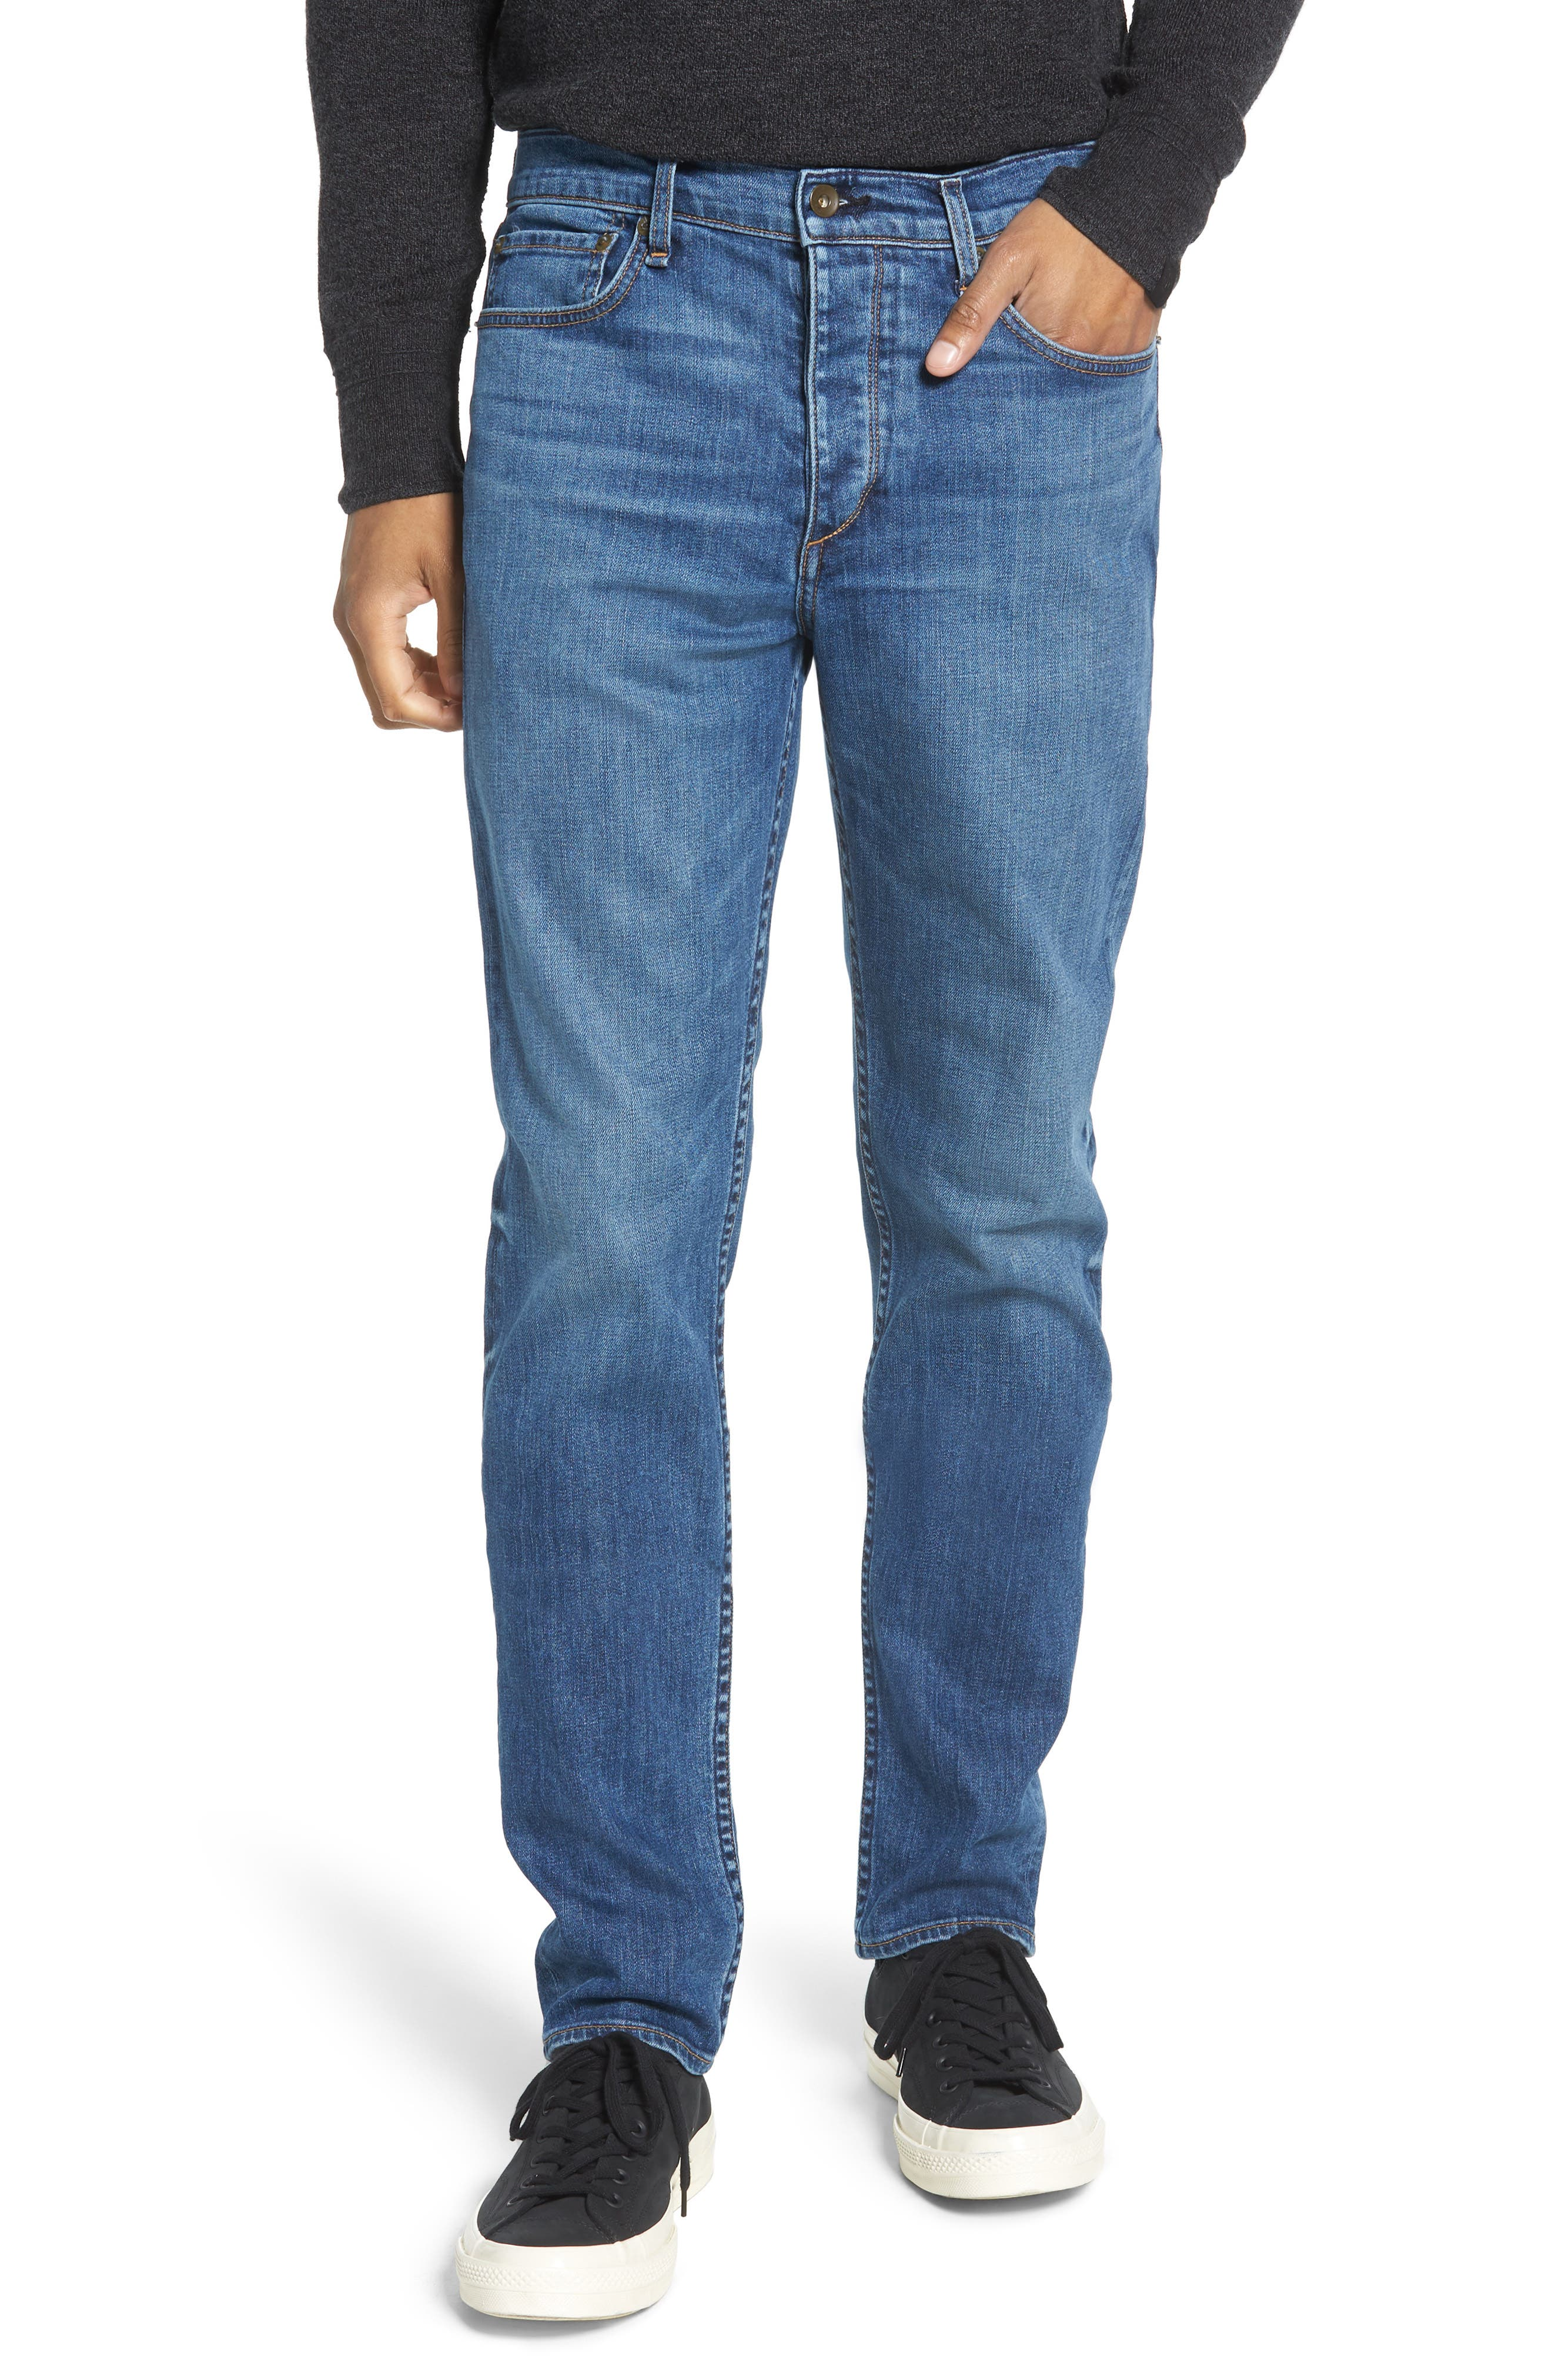 Fit 2 Slim Fit Jeans,                         Main,                         color, LENNY